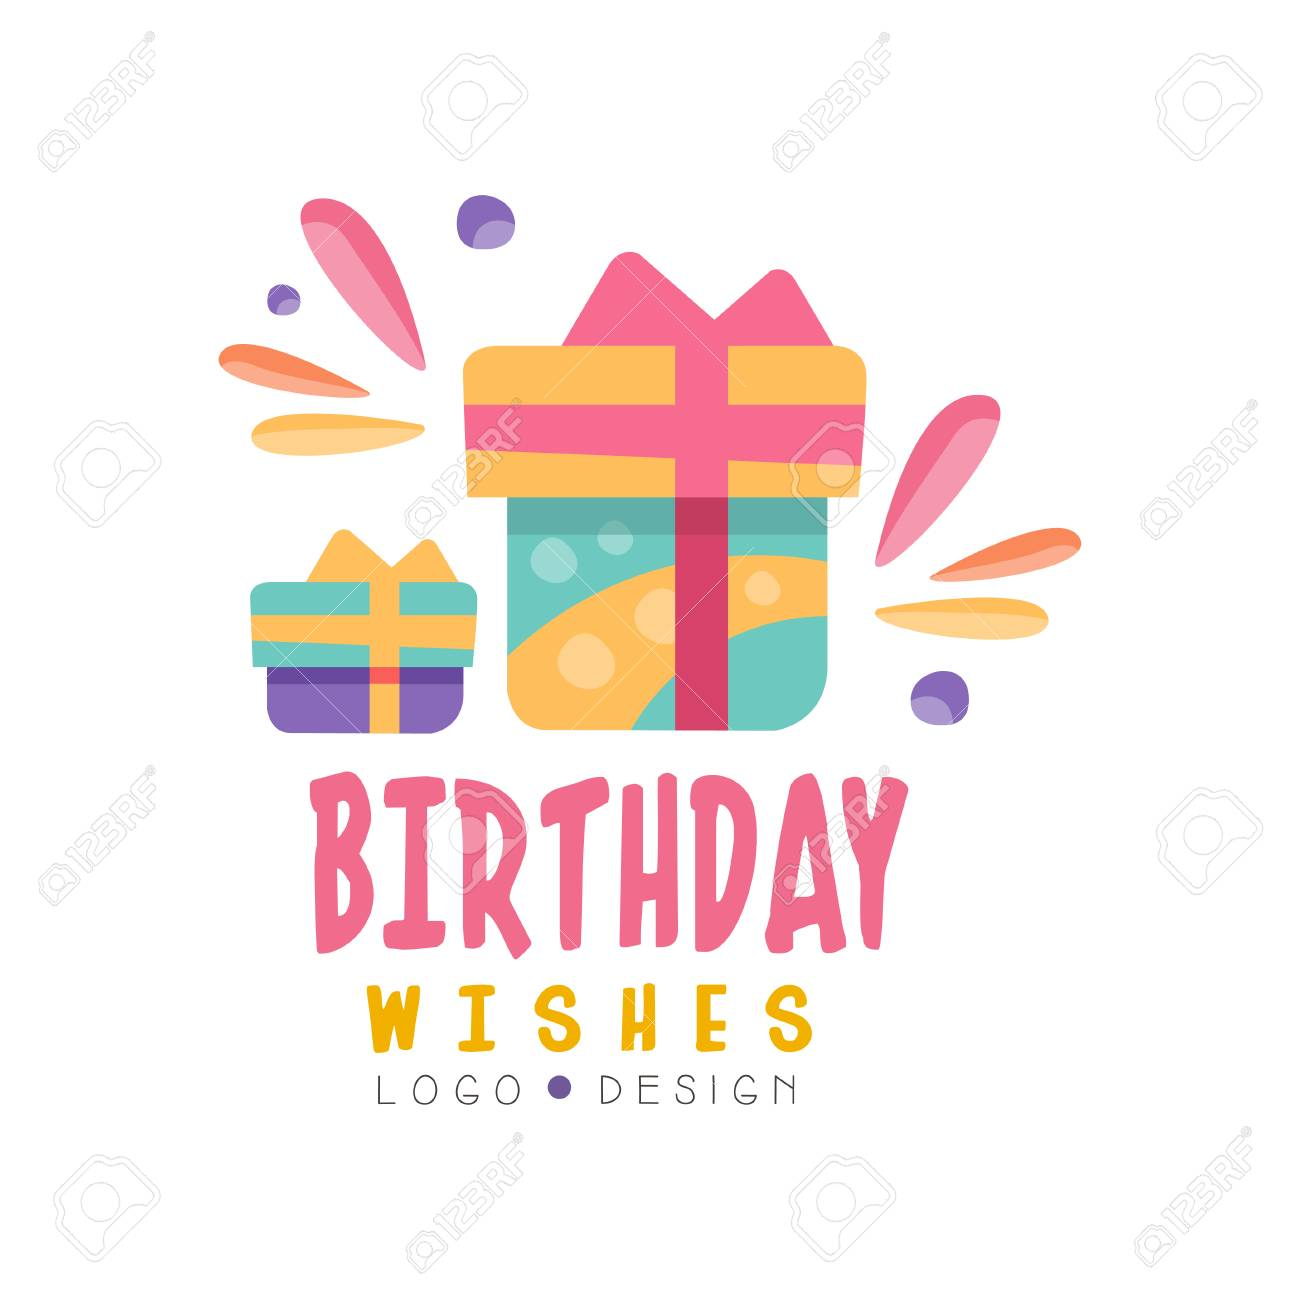 Birthday Wishes Design Colorful Creative Template For Banner Poster Greeting Card Vector Illustration